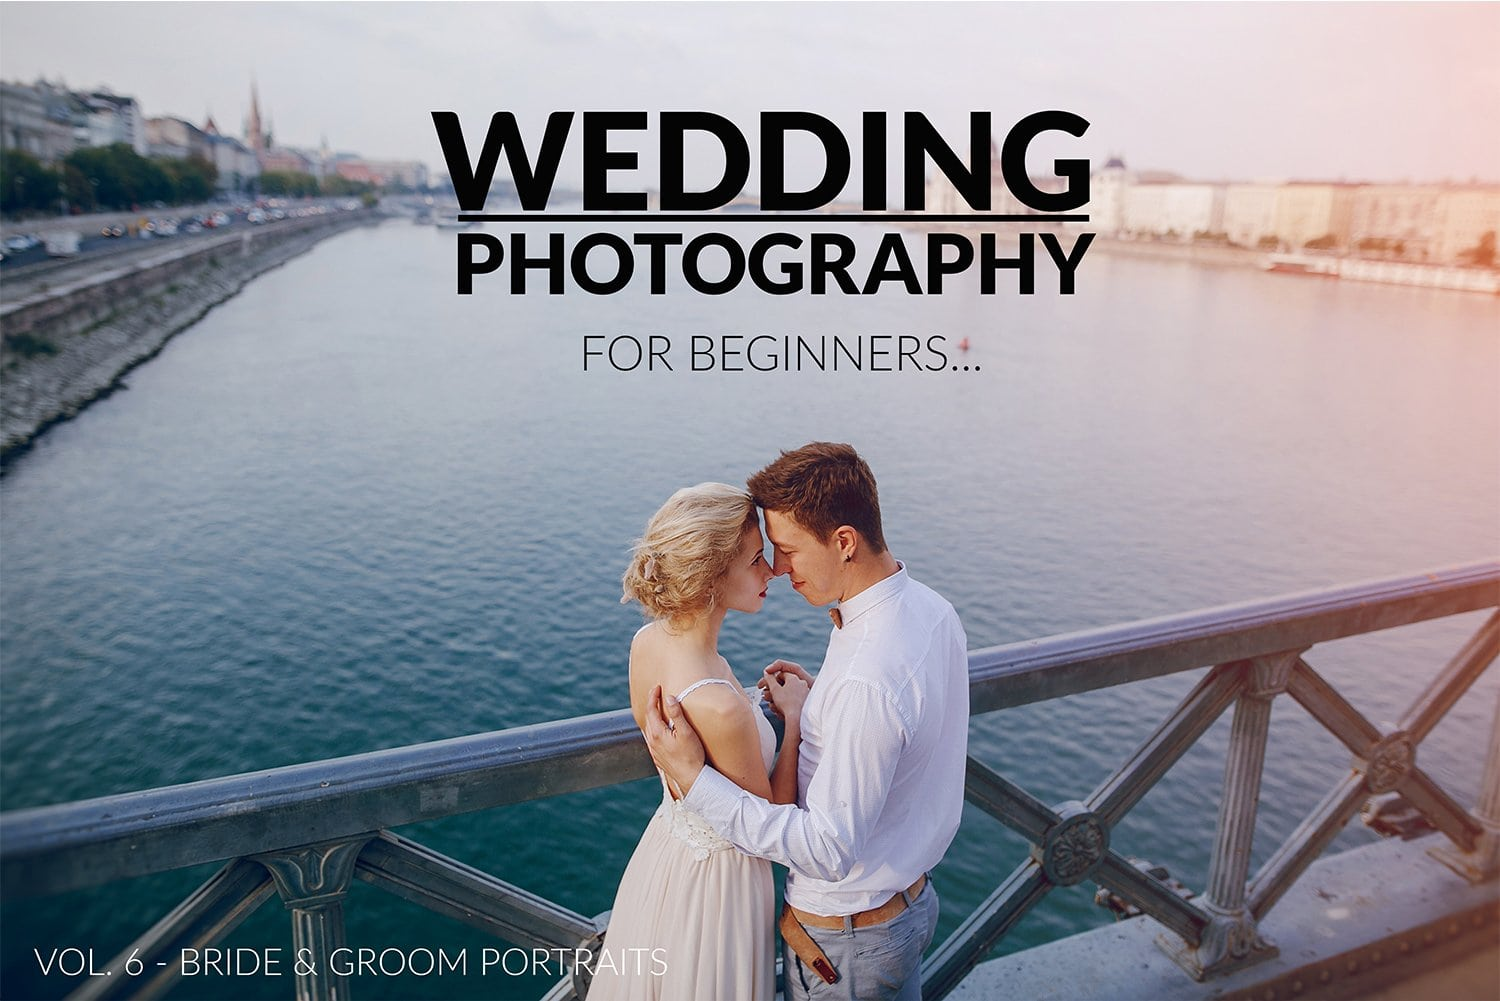 Wedding Photography Tips Beginners: Wedding Photography For Beginners – Vol. 6